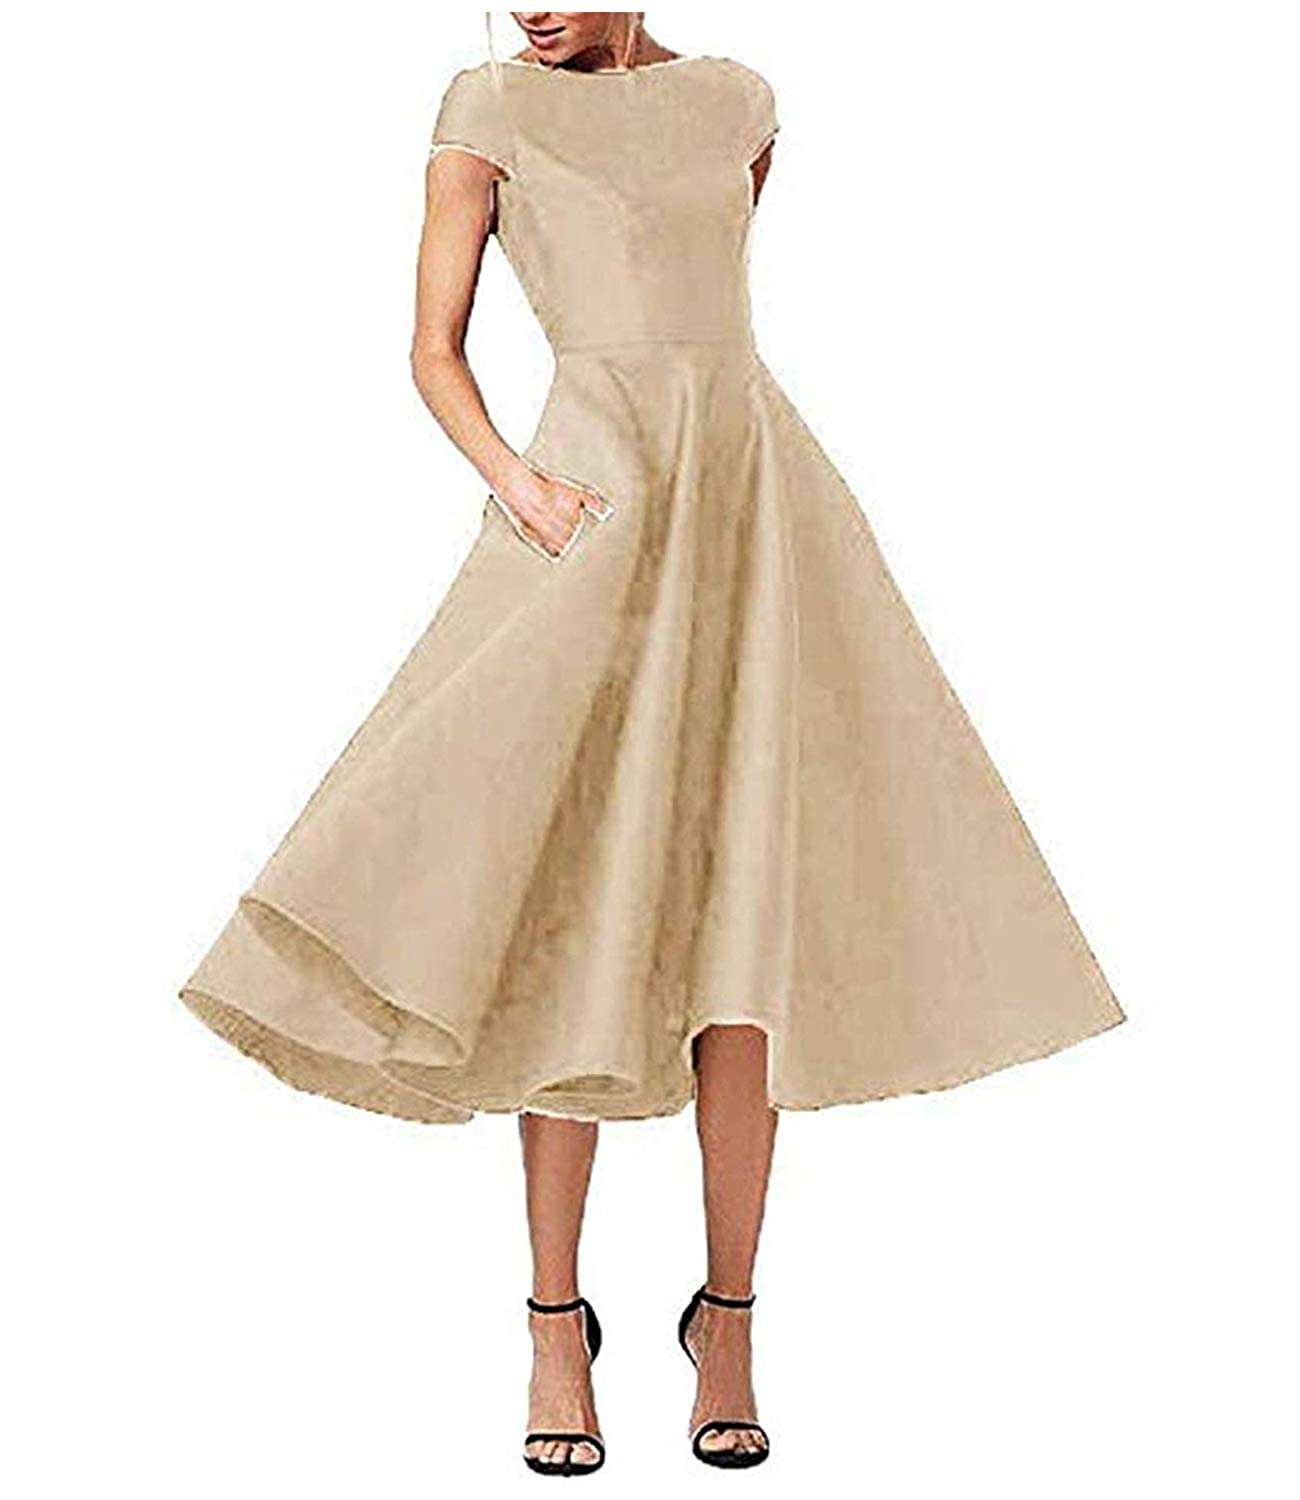 Champagne ZLQQ Women's Tea Length Mother of The Bride Dresses Short Sleeve Formal Prom Gown Pocket